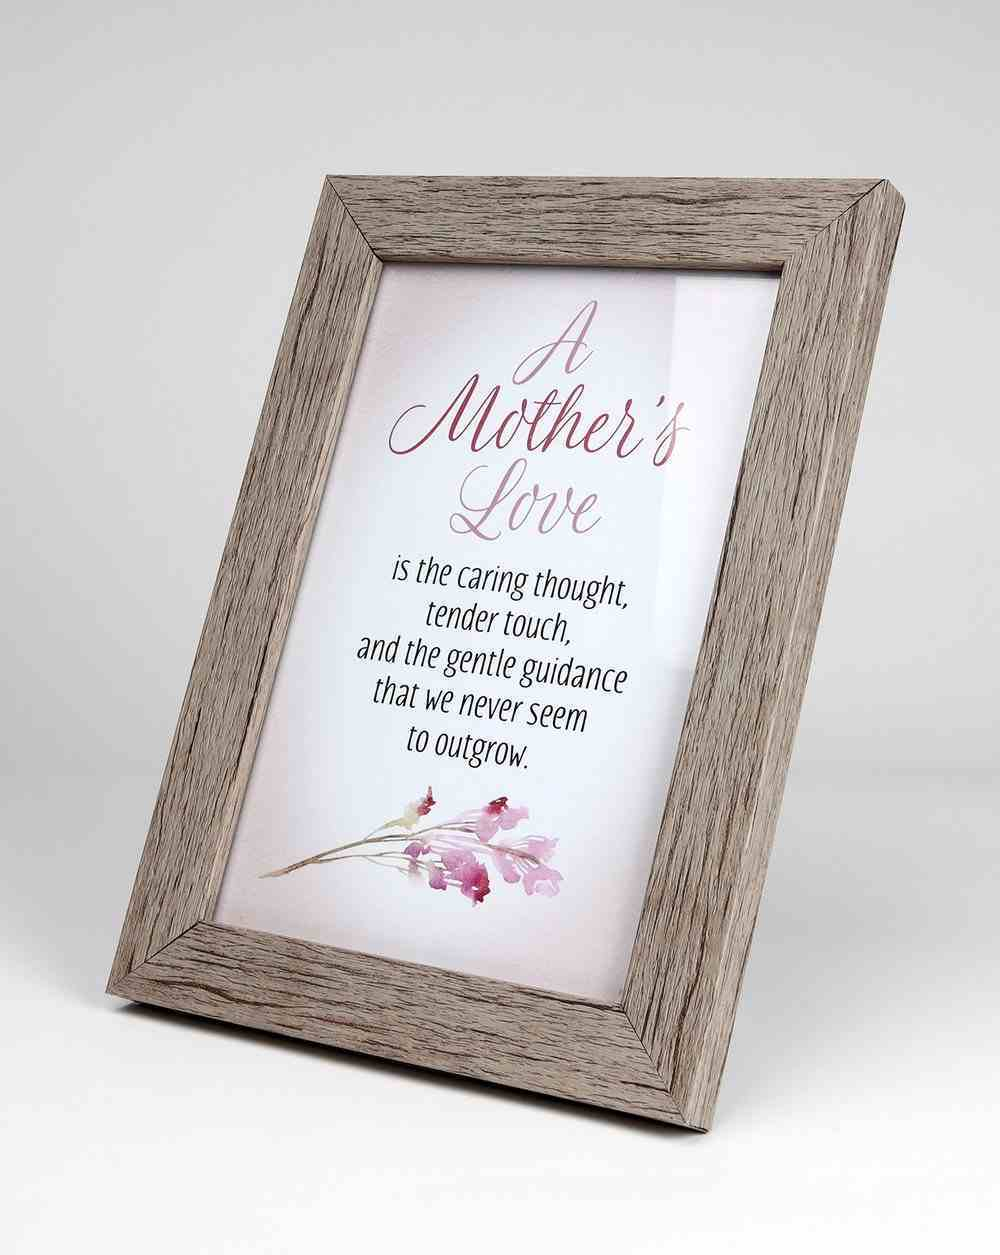 Framed Art With Easel: A Mother's Love (Lasting Impressions Series) Plaque